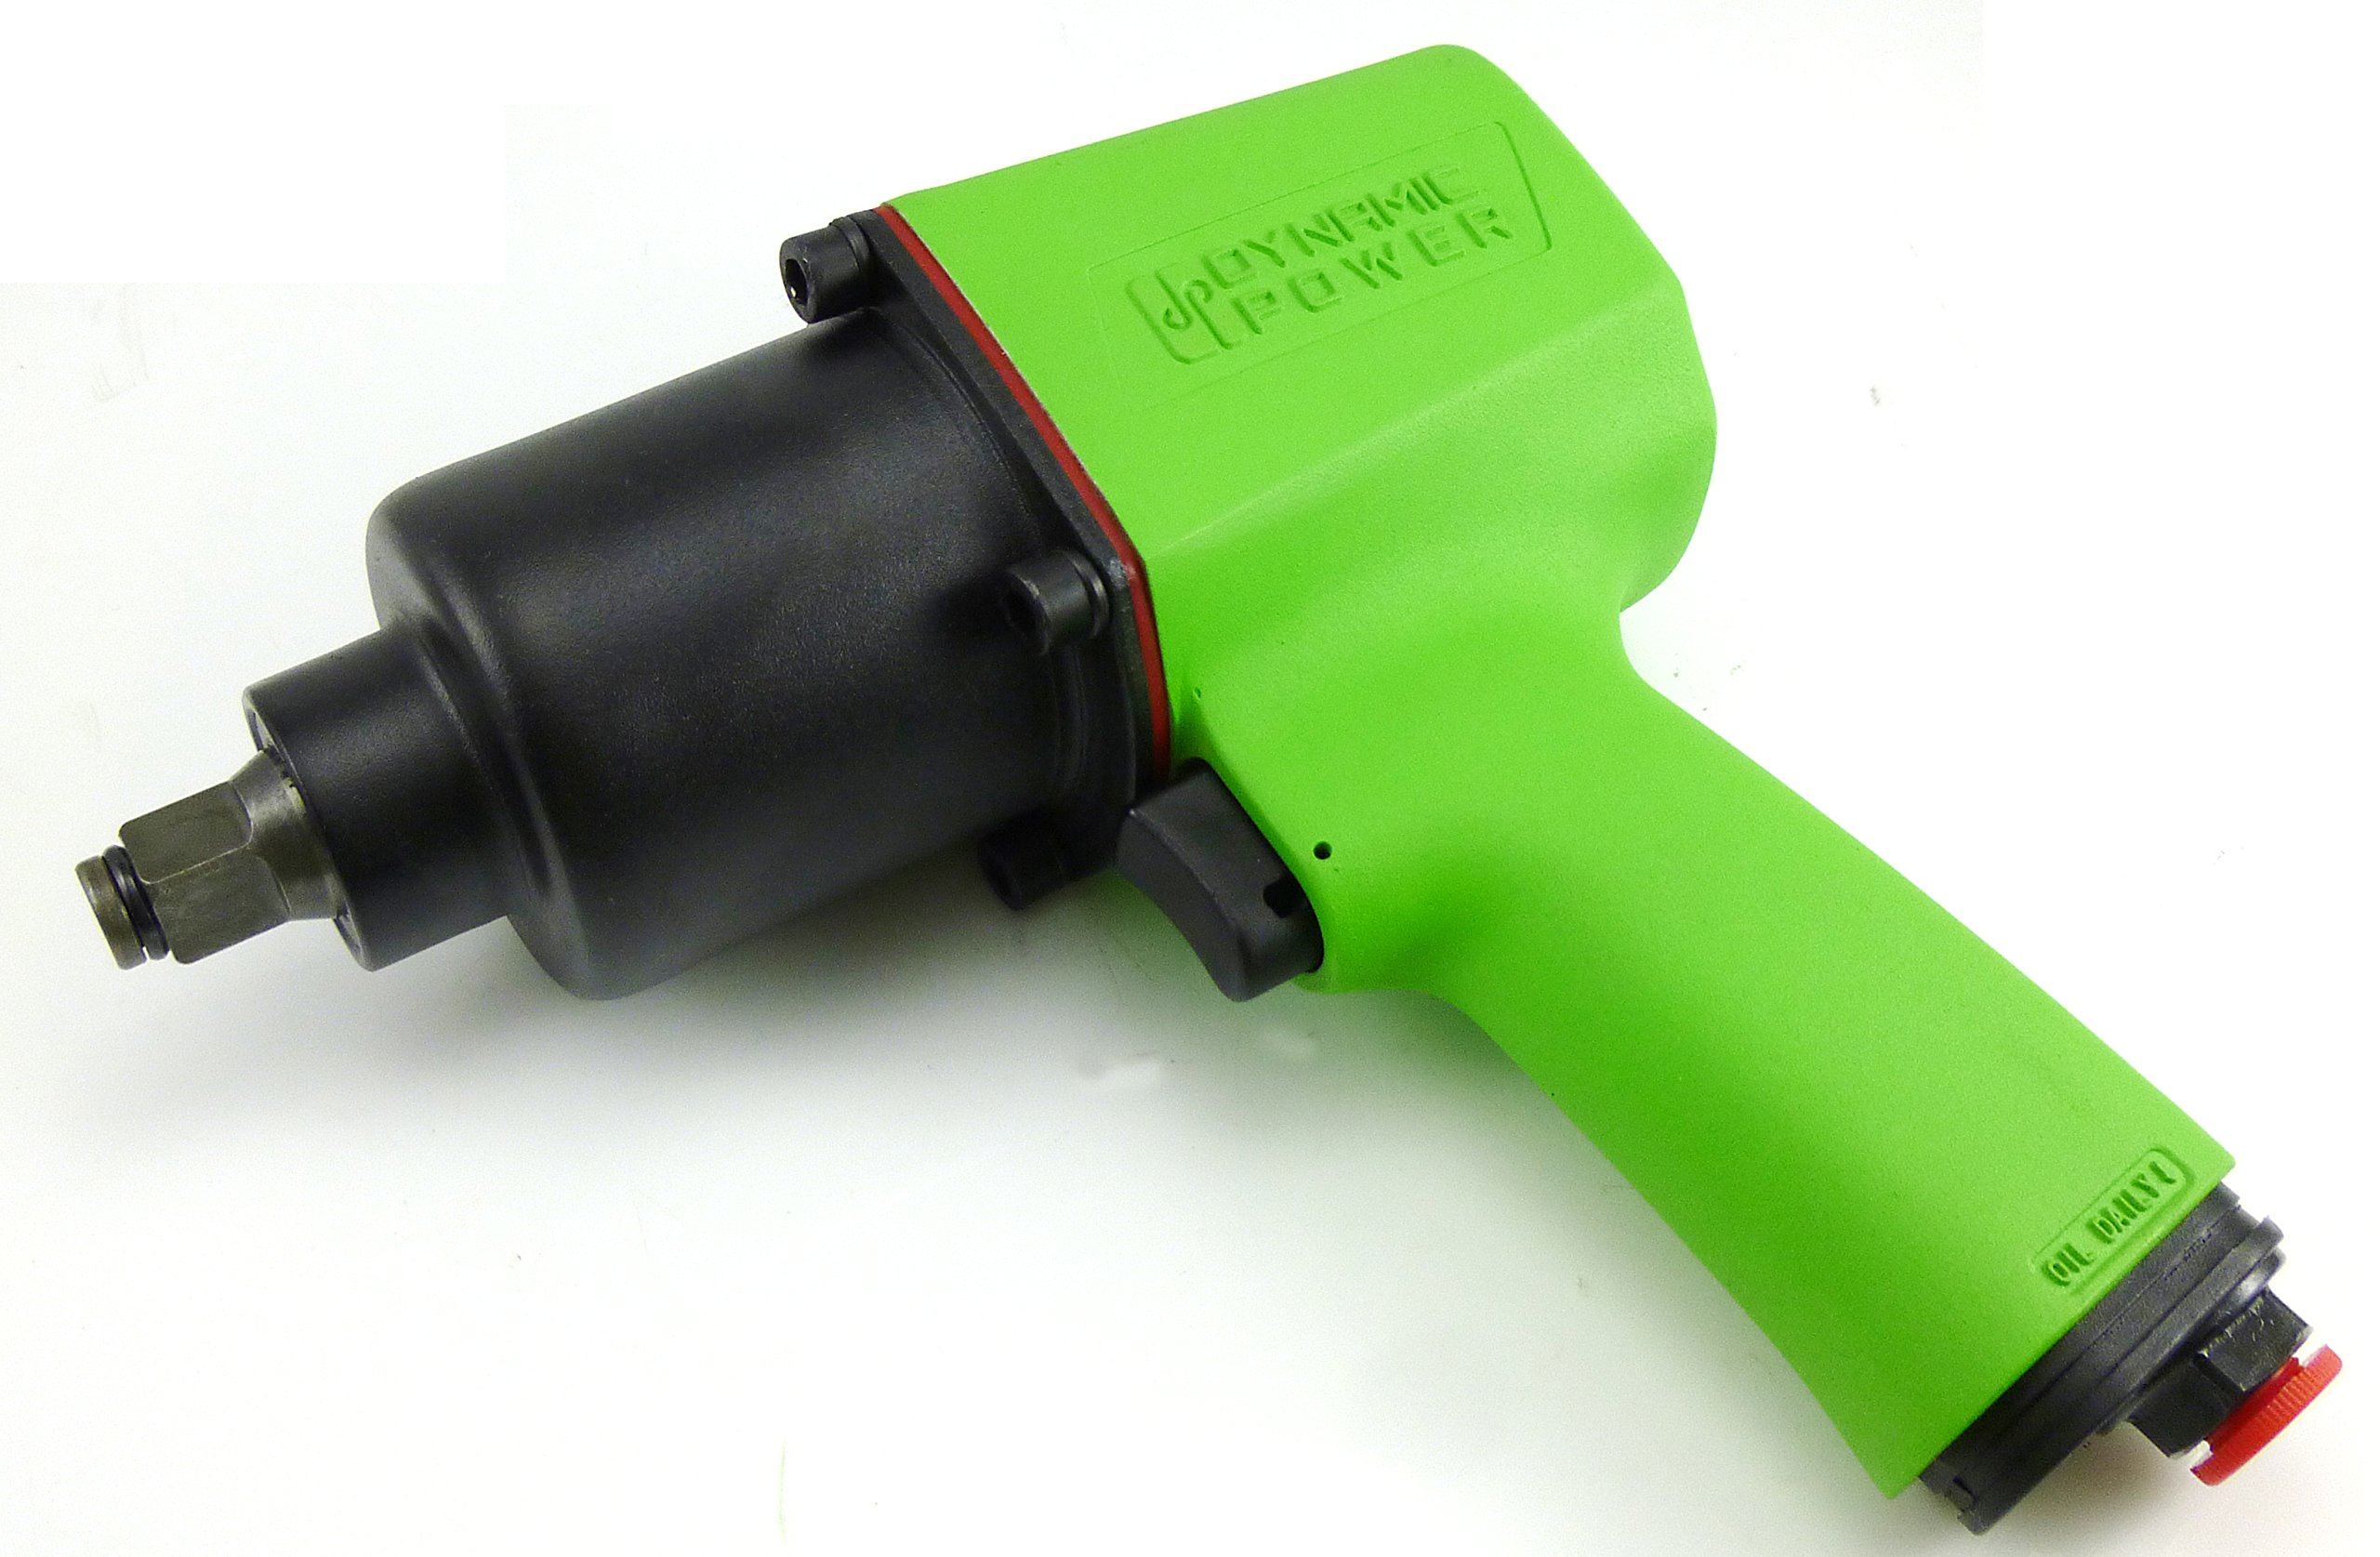 Dynamic Power Air Impact Wrench - Twin Hammer 1/2'' Impact Driver w/Composite Body and Comfort Grip. 600 ft-lb. D62627